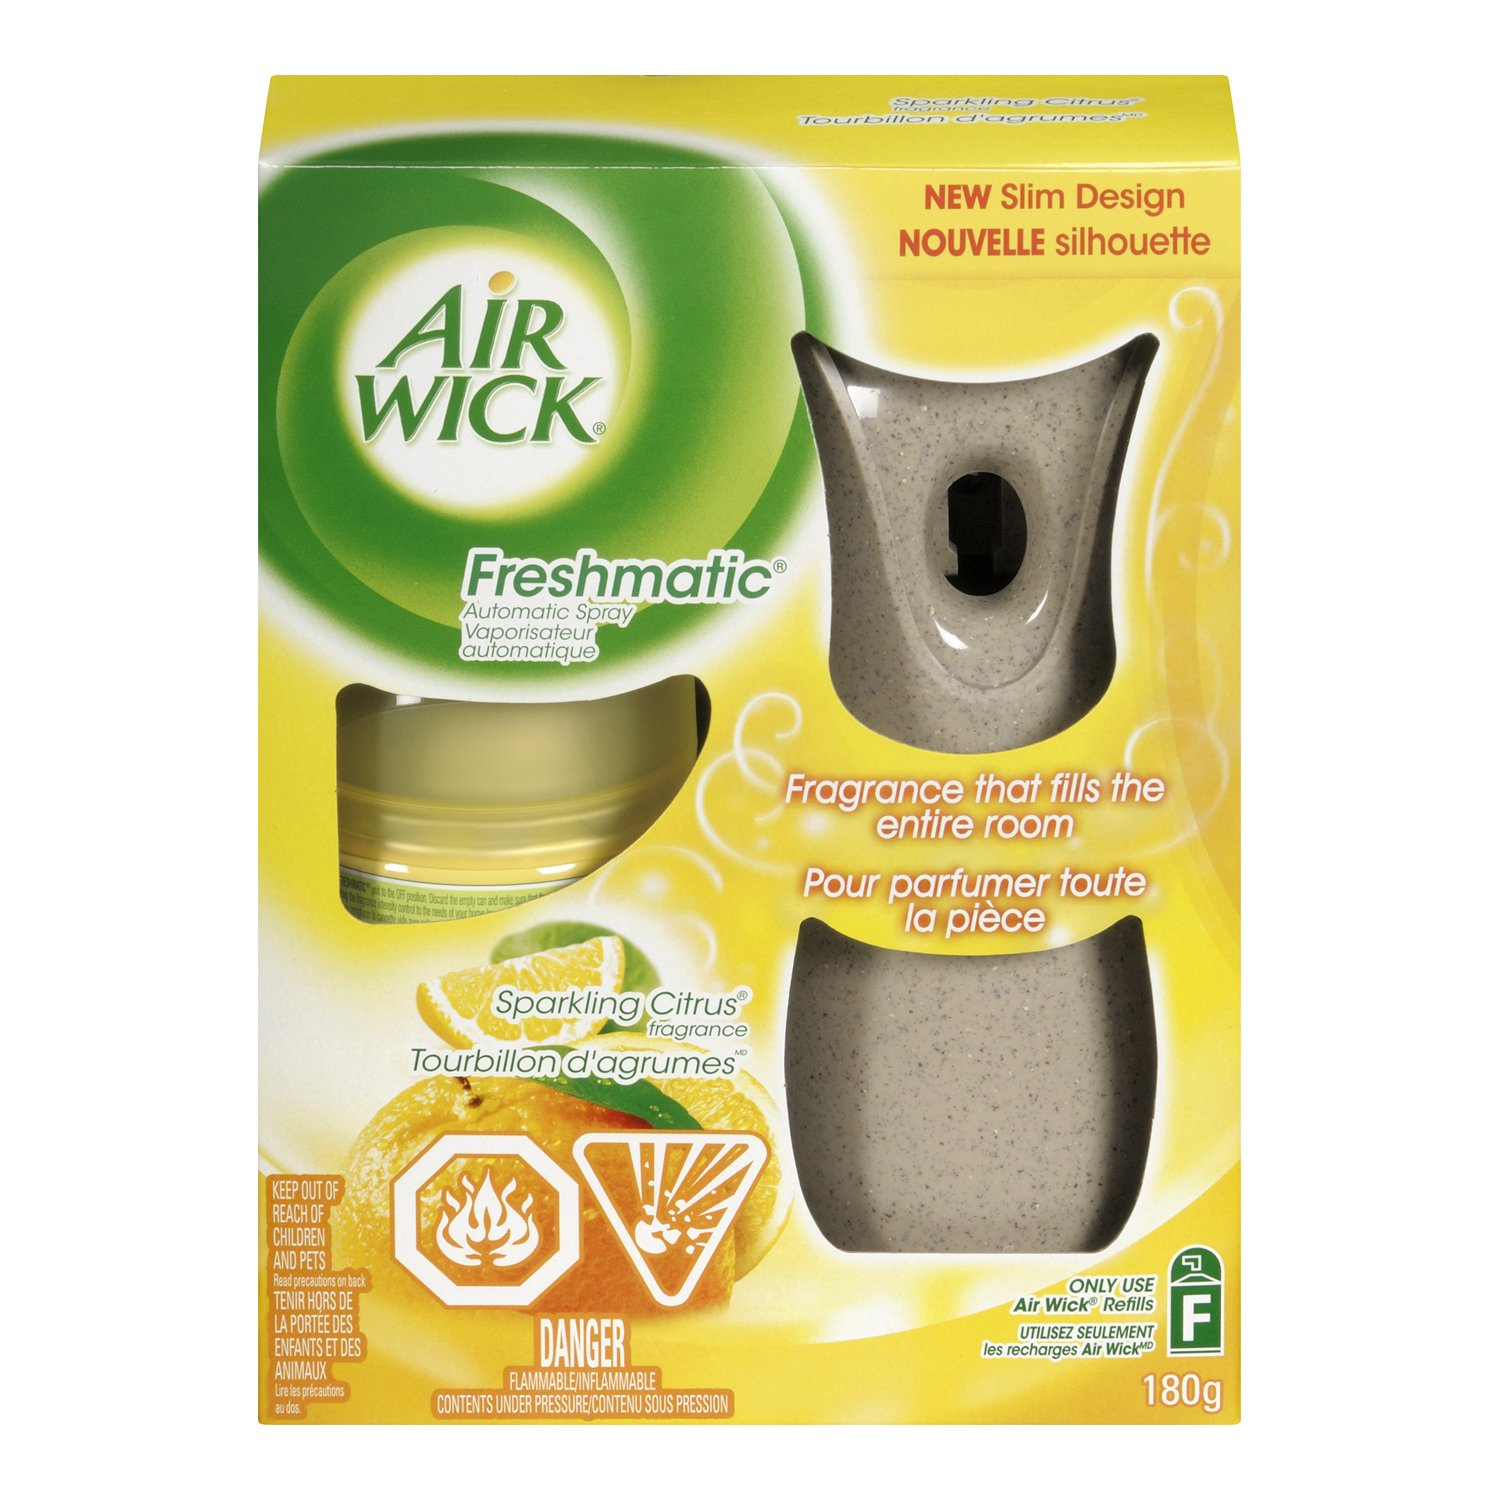 Air Wick Freshmatic Air Freshener, Automatic Spray Refills, Fresh Waters, 3 Refills Manufacturer